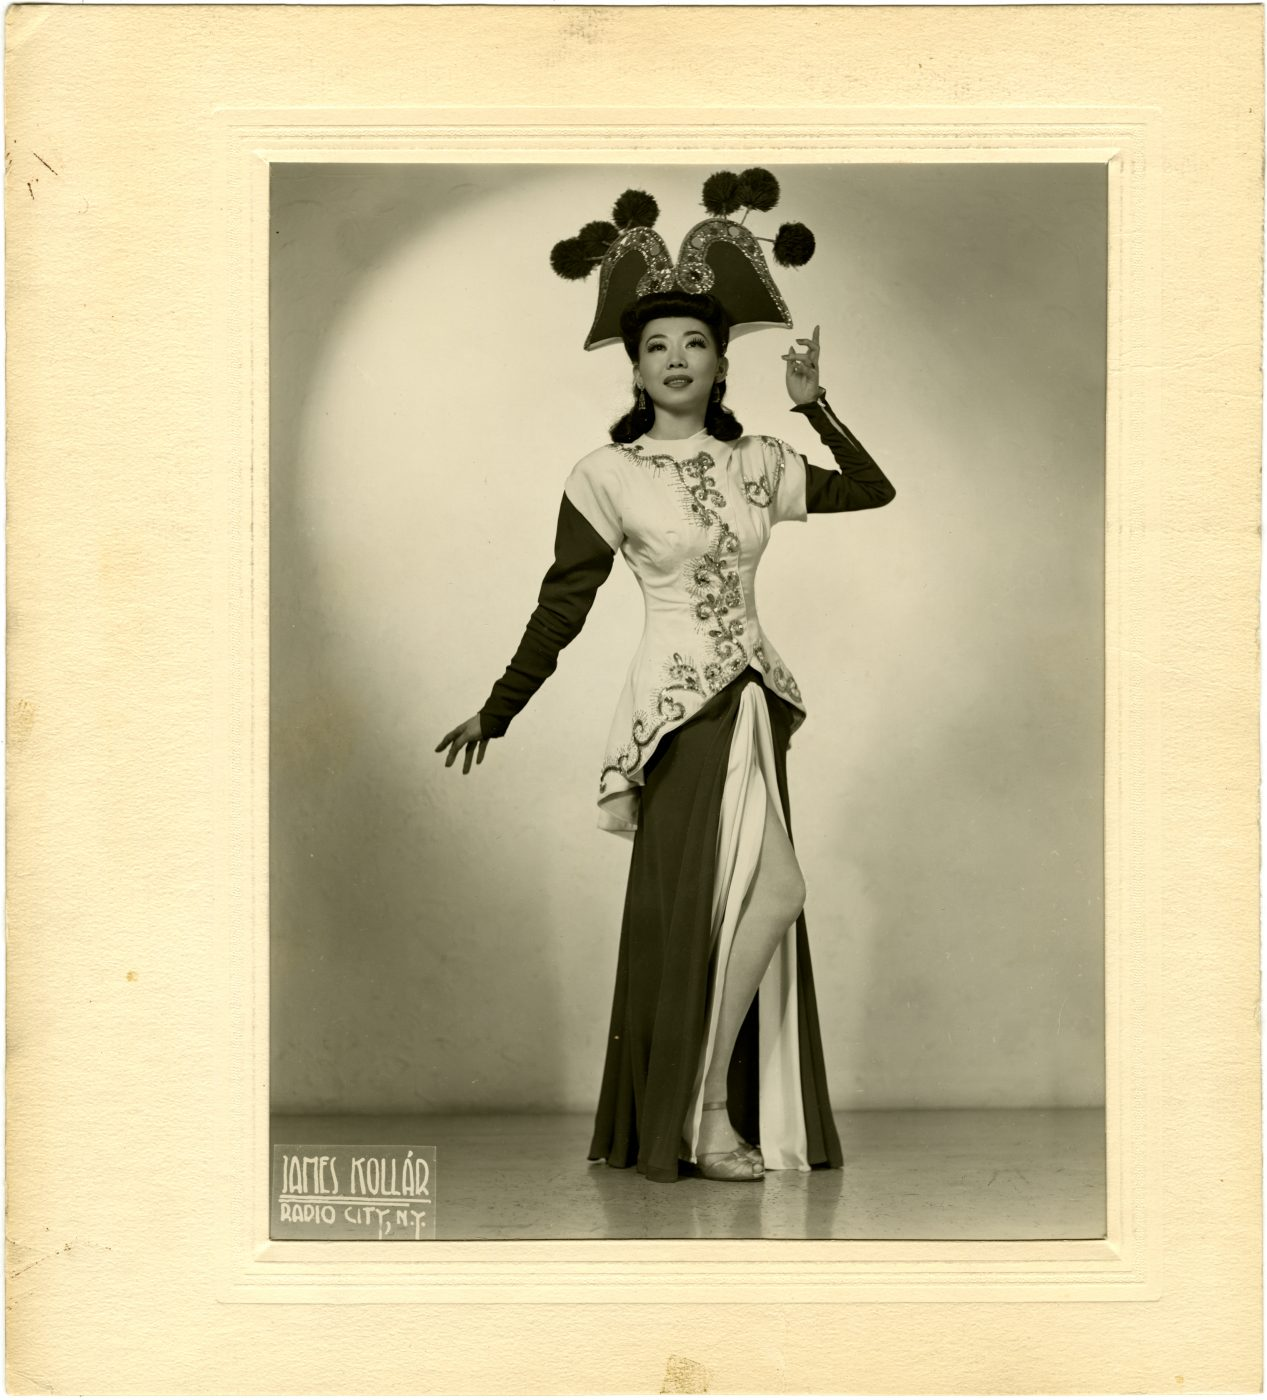 15 May 2019 Posted. Mary Mon Toy in Costume, Courtesy of Marnie Mueller, Museum of Chinese in America (MOCA) Collection. 身着演出服装的Mary Mon Toy,Marnie Mueller捐赠,美国华人博物馆(MOCA)馆藏